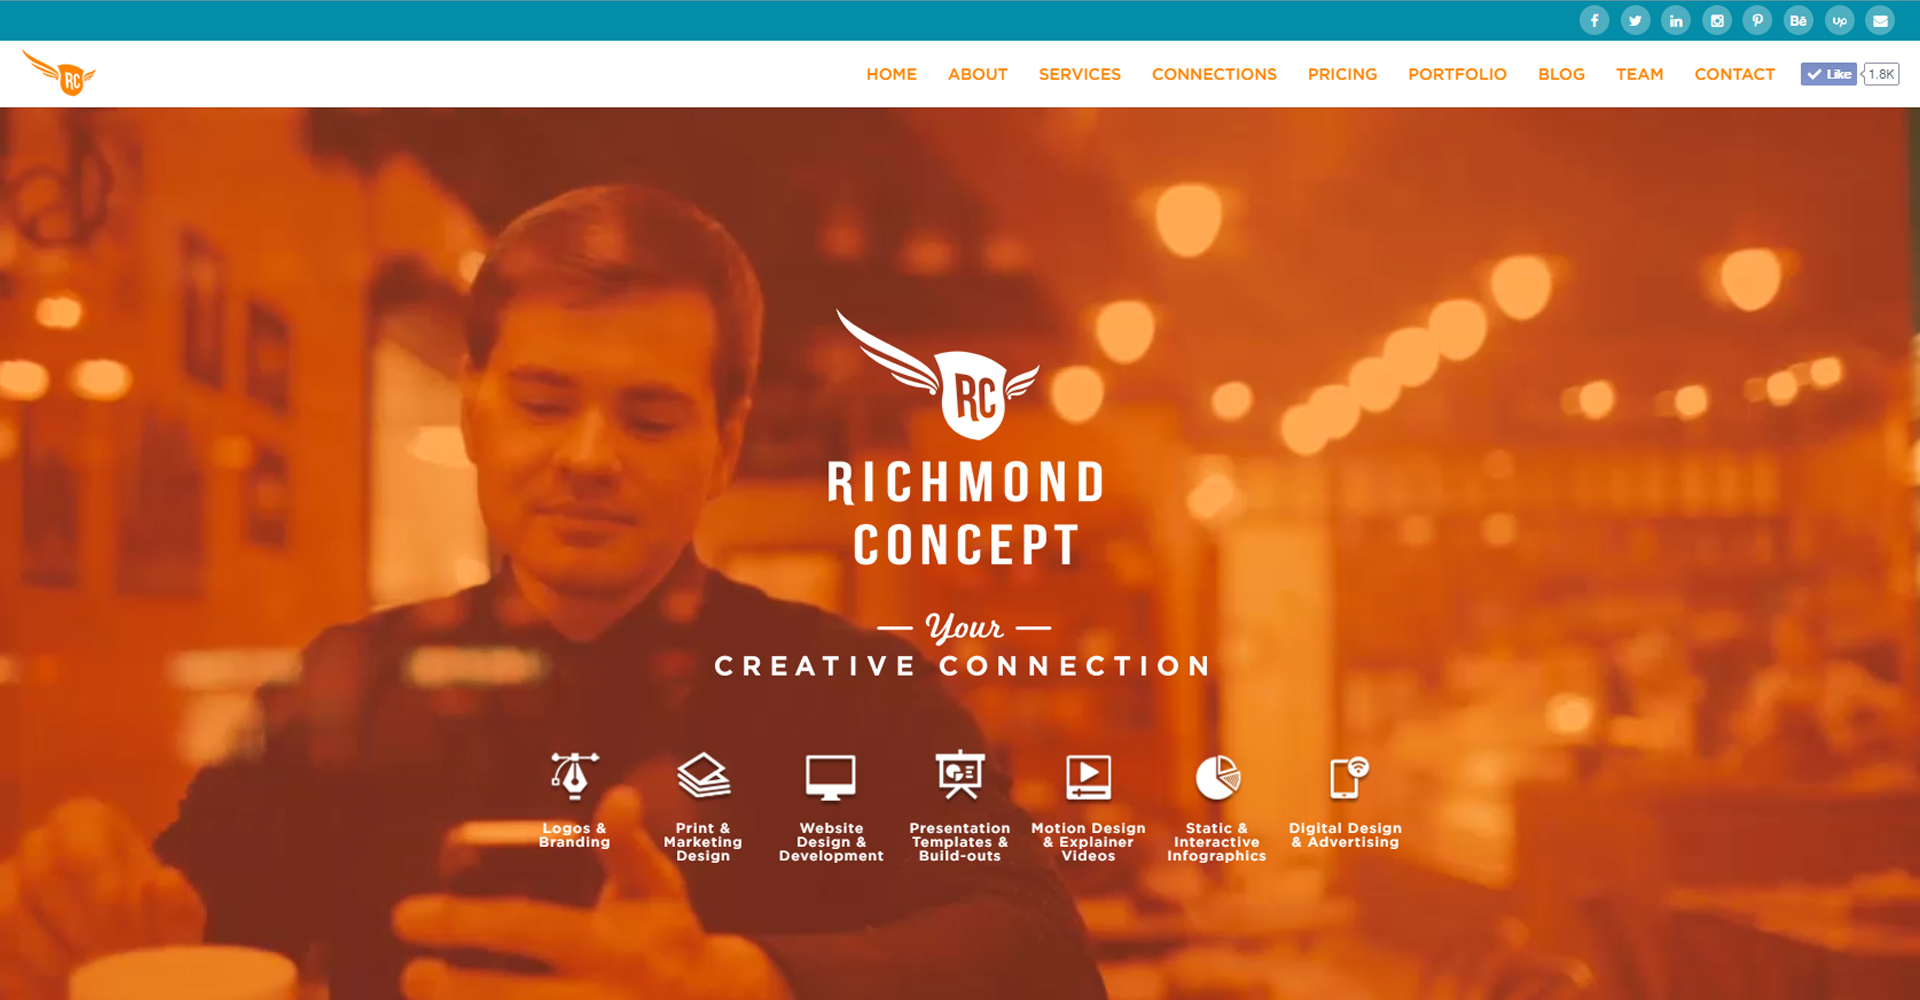 Richmond Concept - Zoda Design